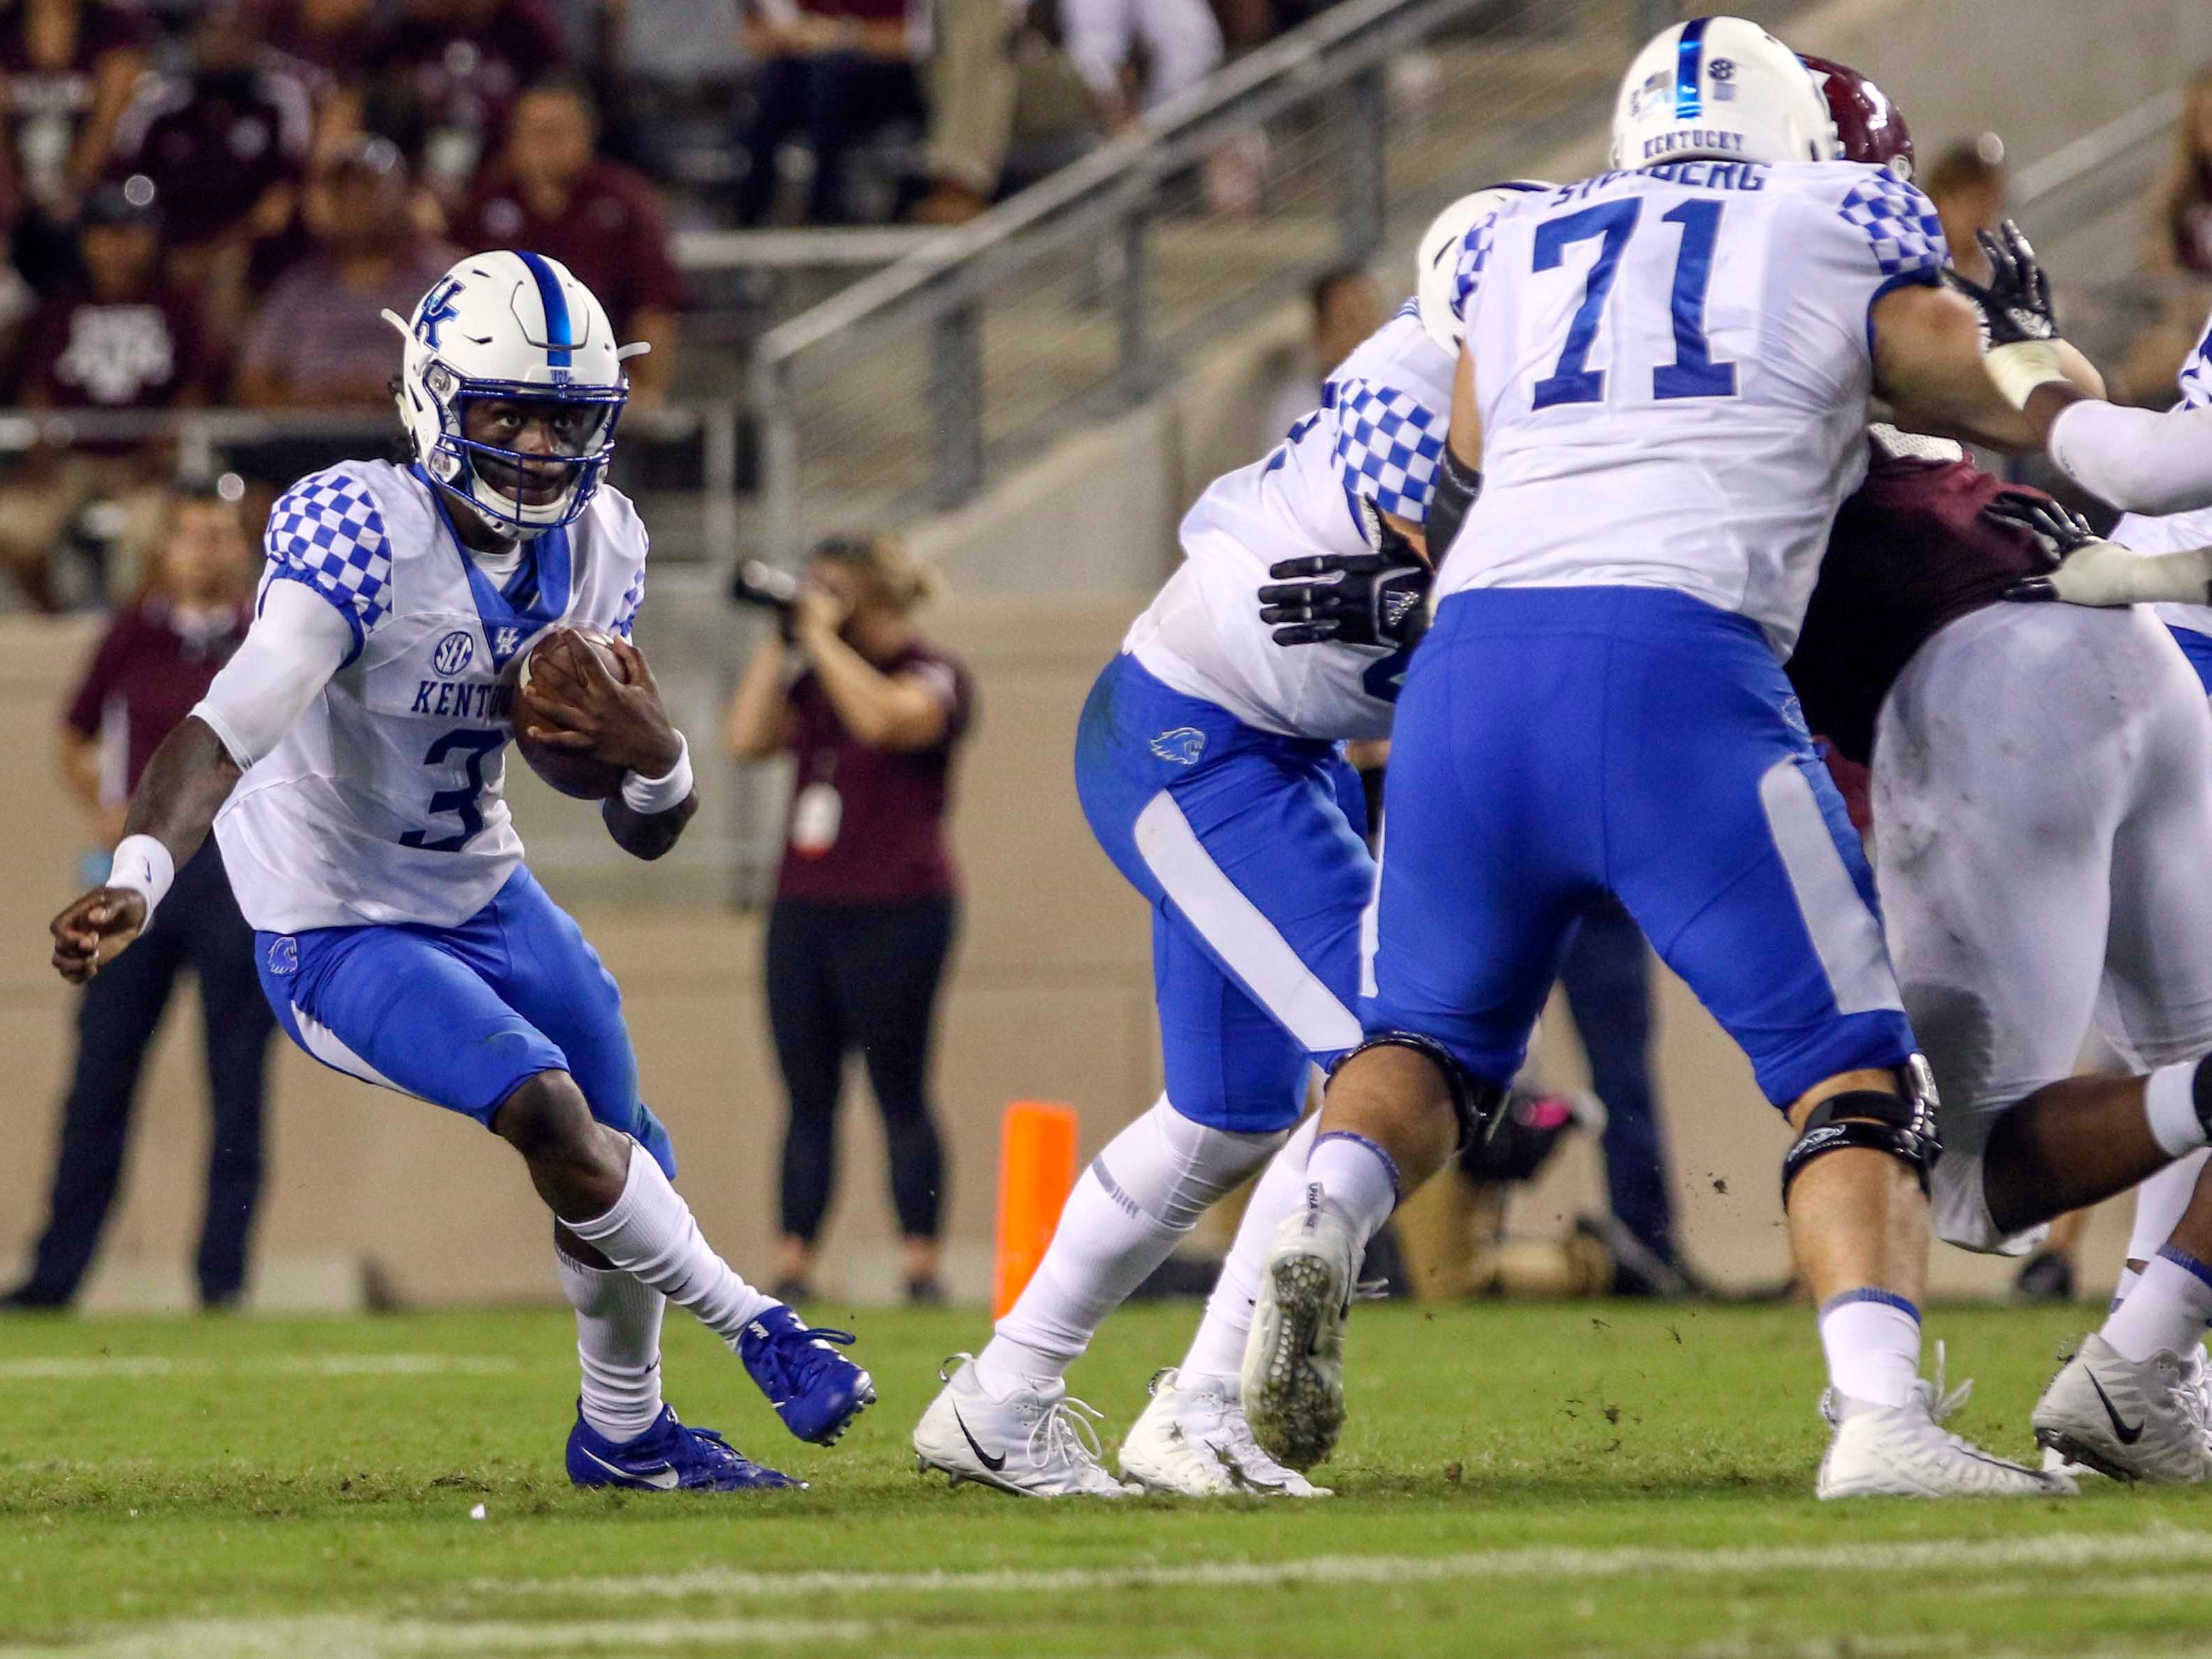 Oct 6, 2018; College Station, TX, USA; Kentucky Wildcats quarterback Terry Wilson (3) runs for yards during the third quarter against the Texas A&M Aggiesat Kyle Field.